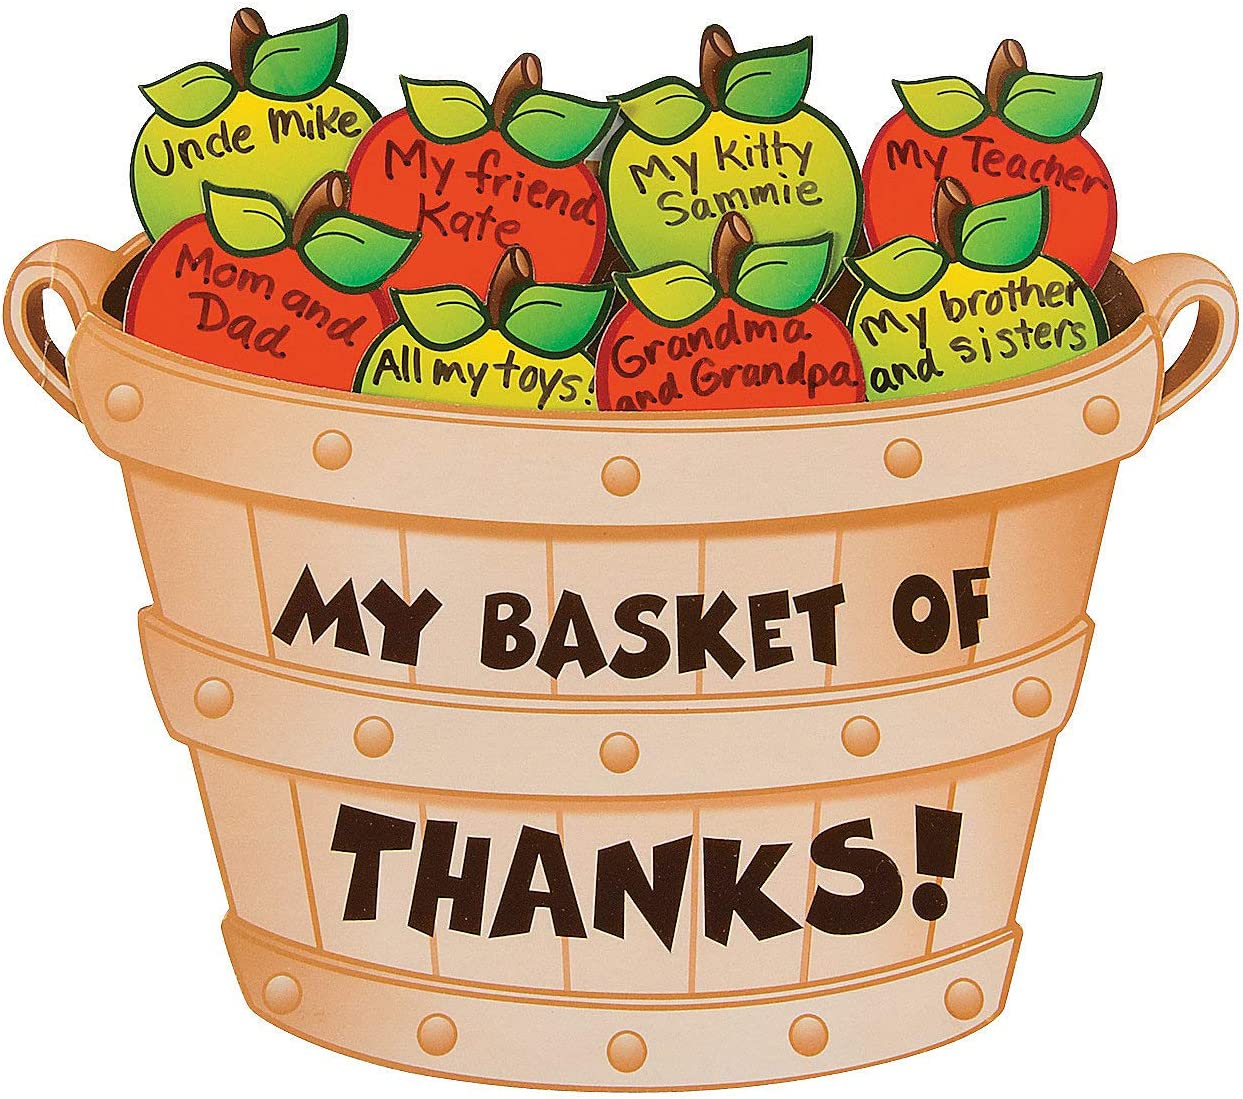 Bushell Inexpensive of Thanks Apple Craft Reservation Kit -12 and - Kids Crafts for Fun